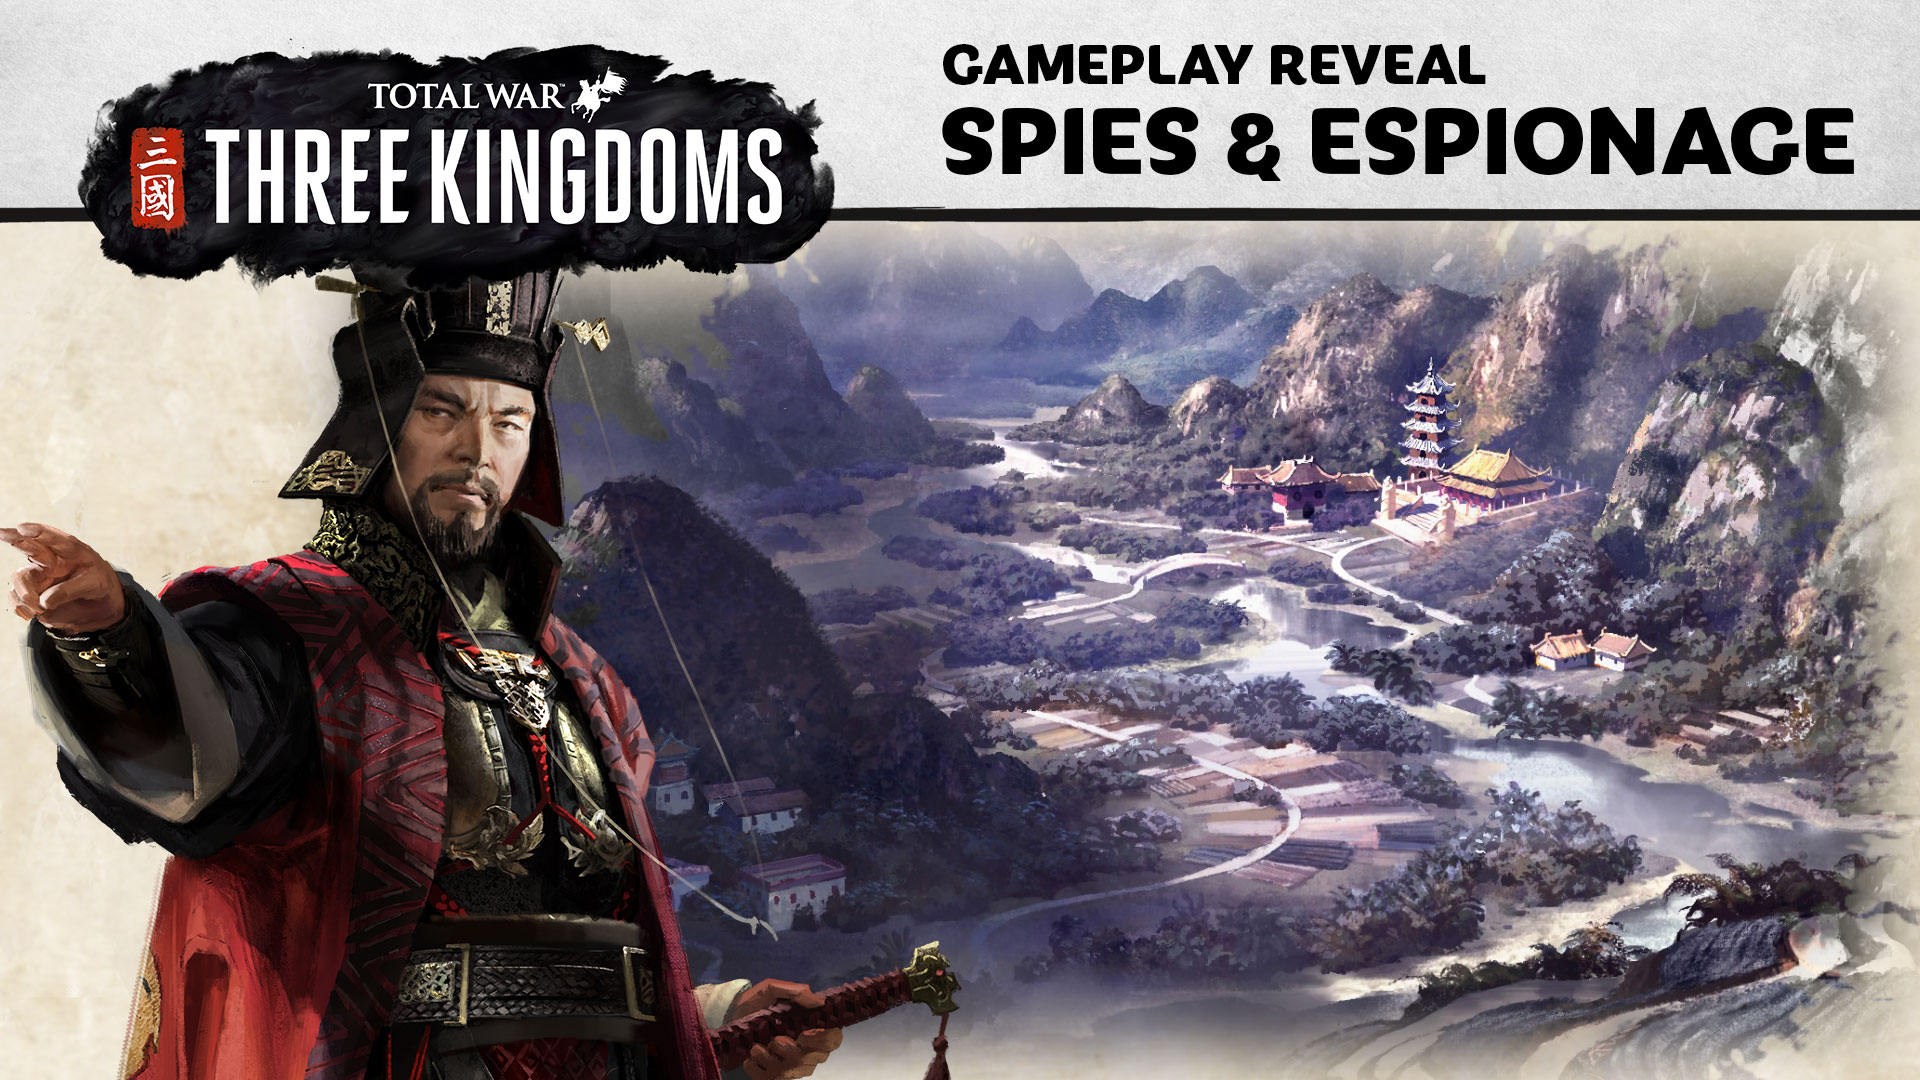 Total War: THREE KINGDOMS - Spies Gameplay Reveal — Total War Forums